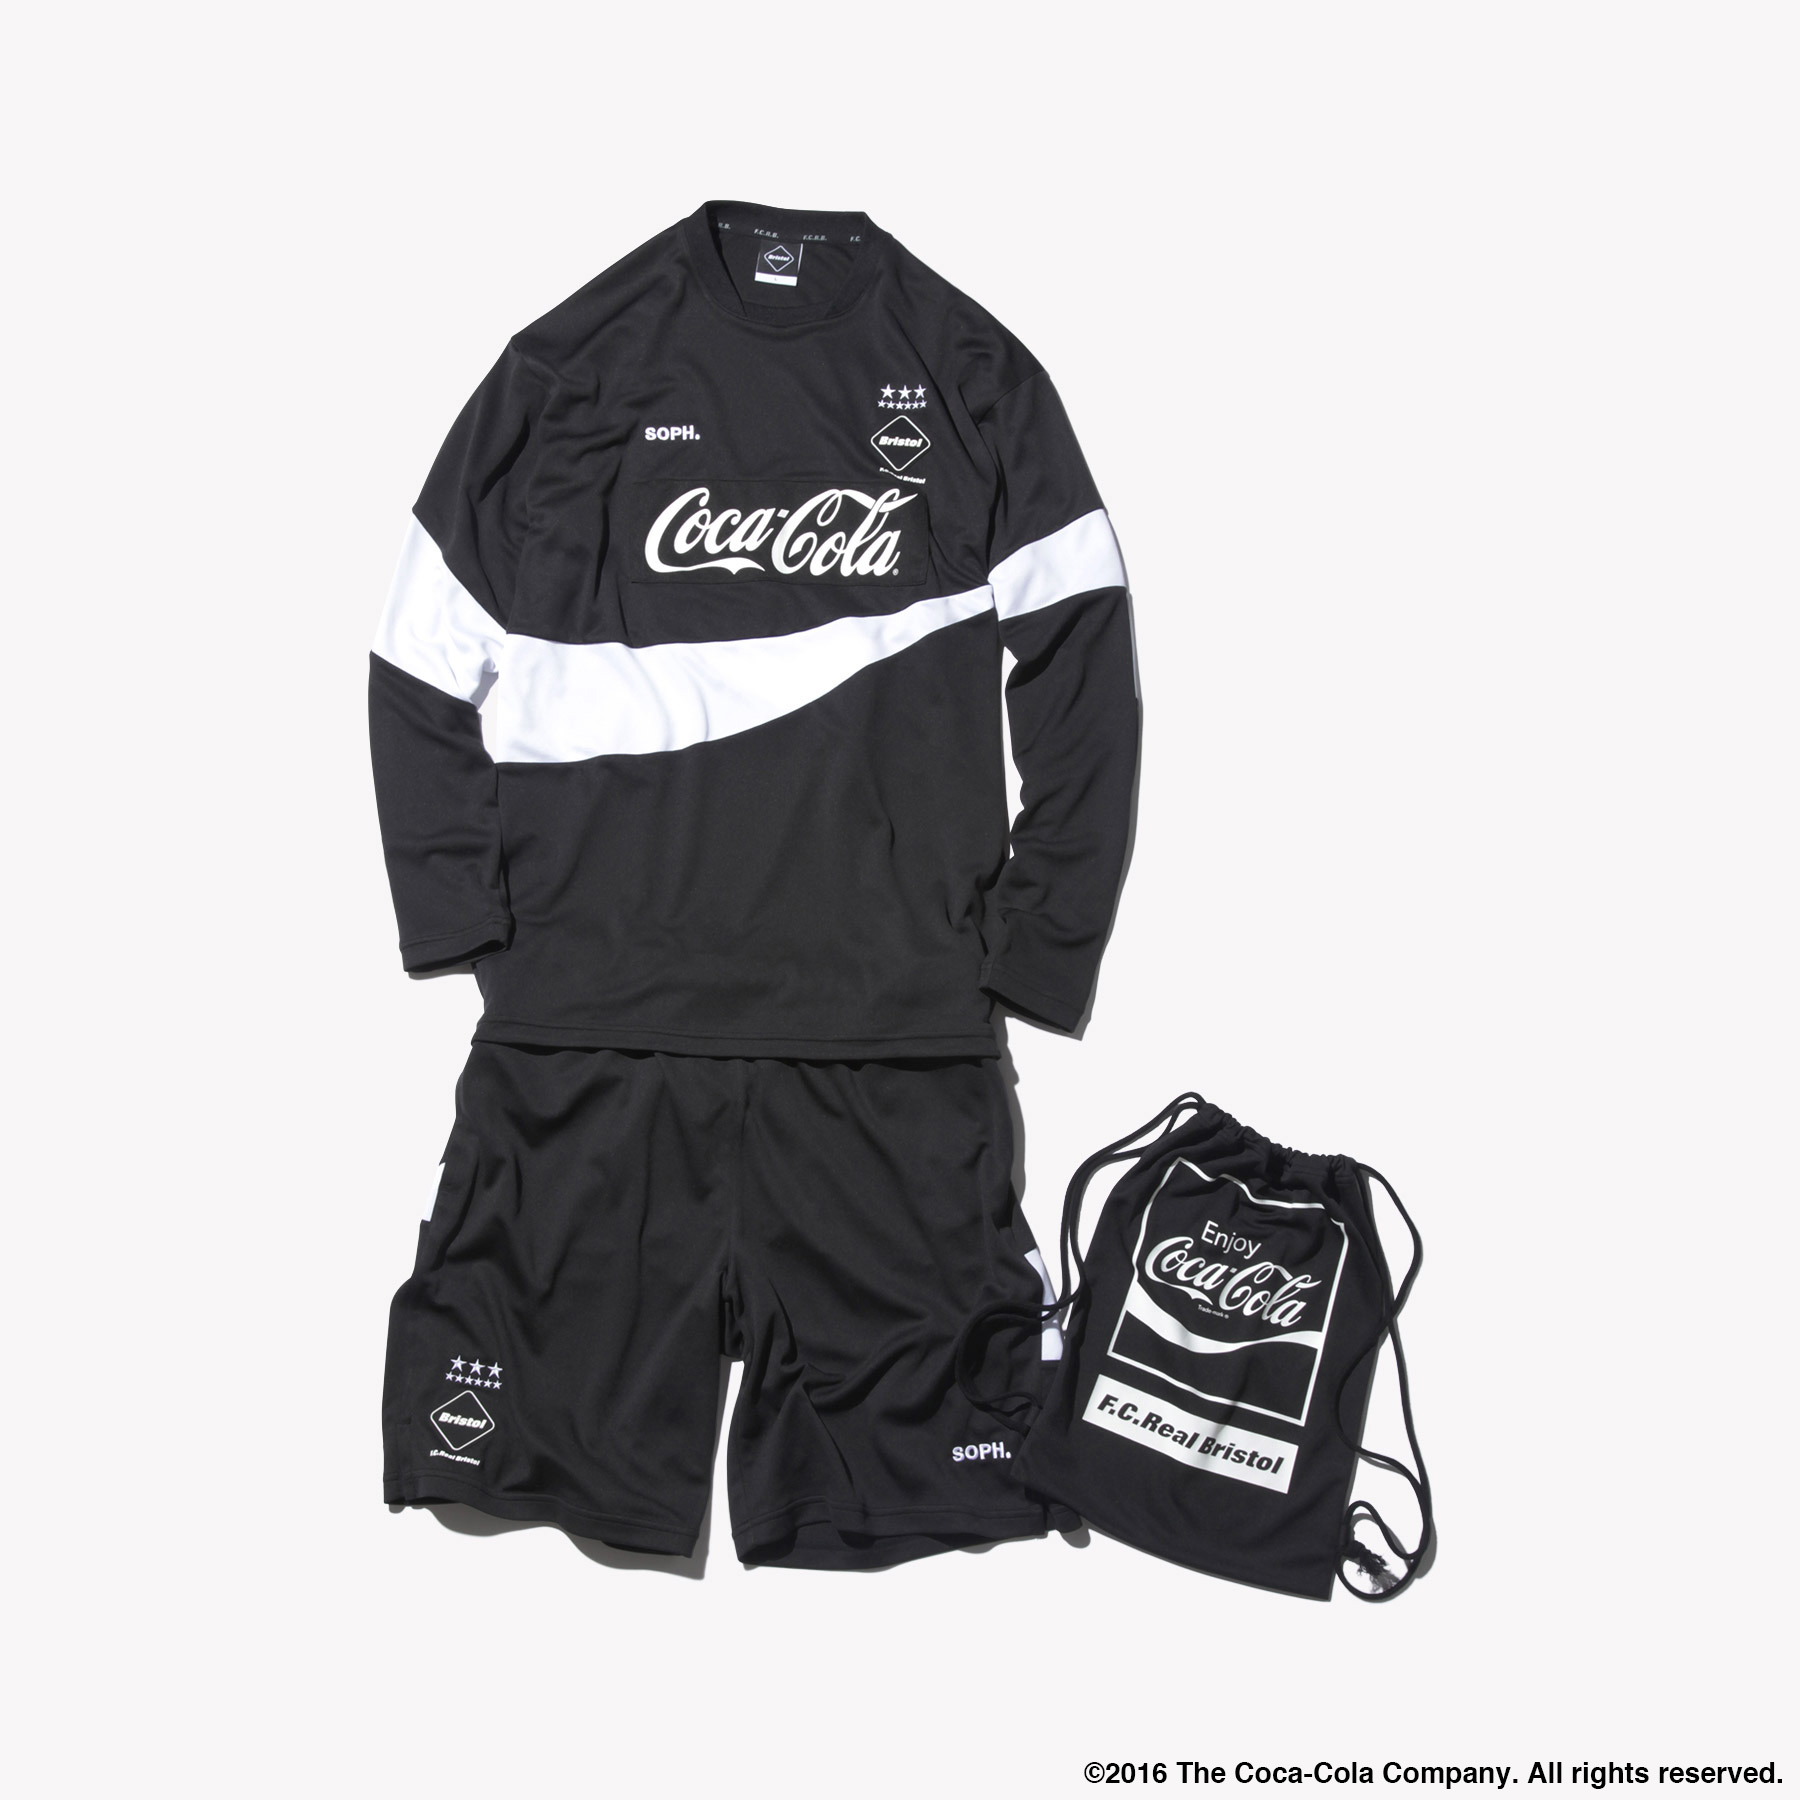 fcrb-coca-cola-soph-17th-anniversary-collection-7